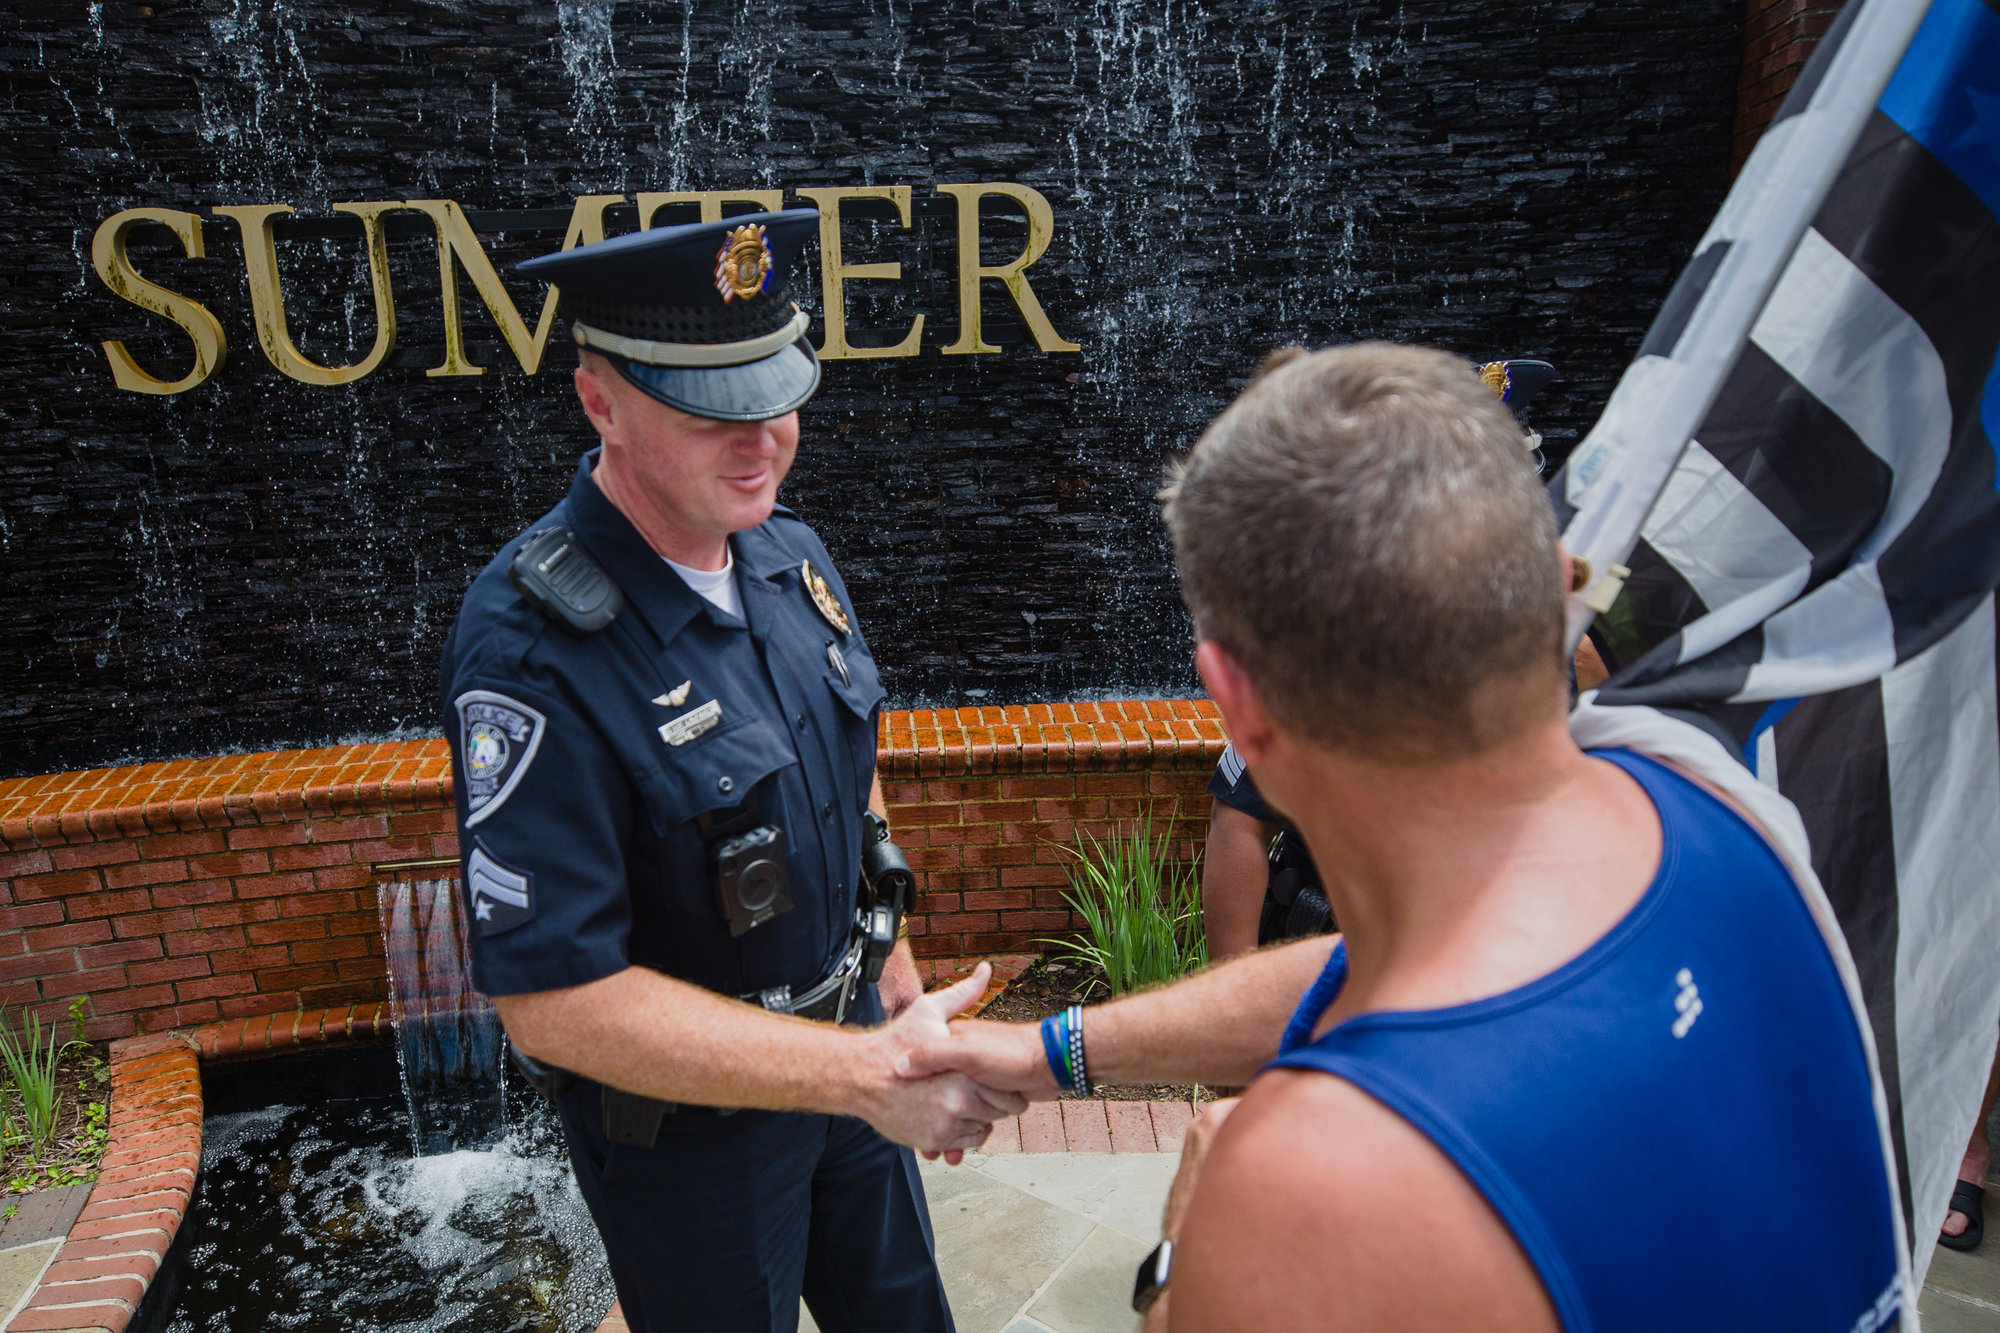 Daniel Watson shakes hands with Officer Brian Kyzer with the Sumter Police Department after completing his part of the run.